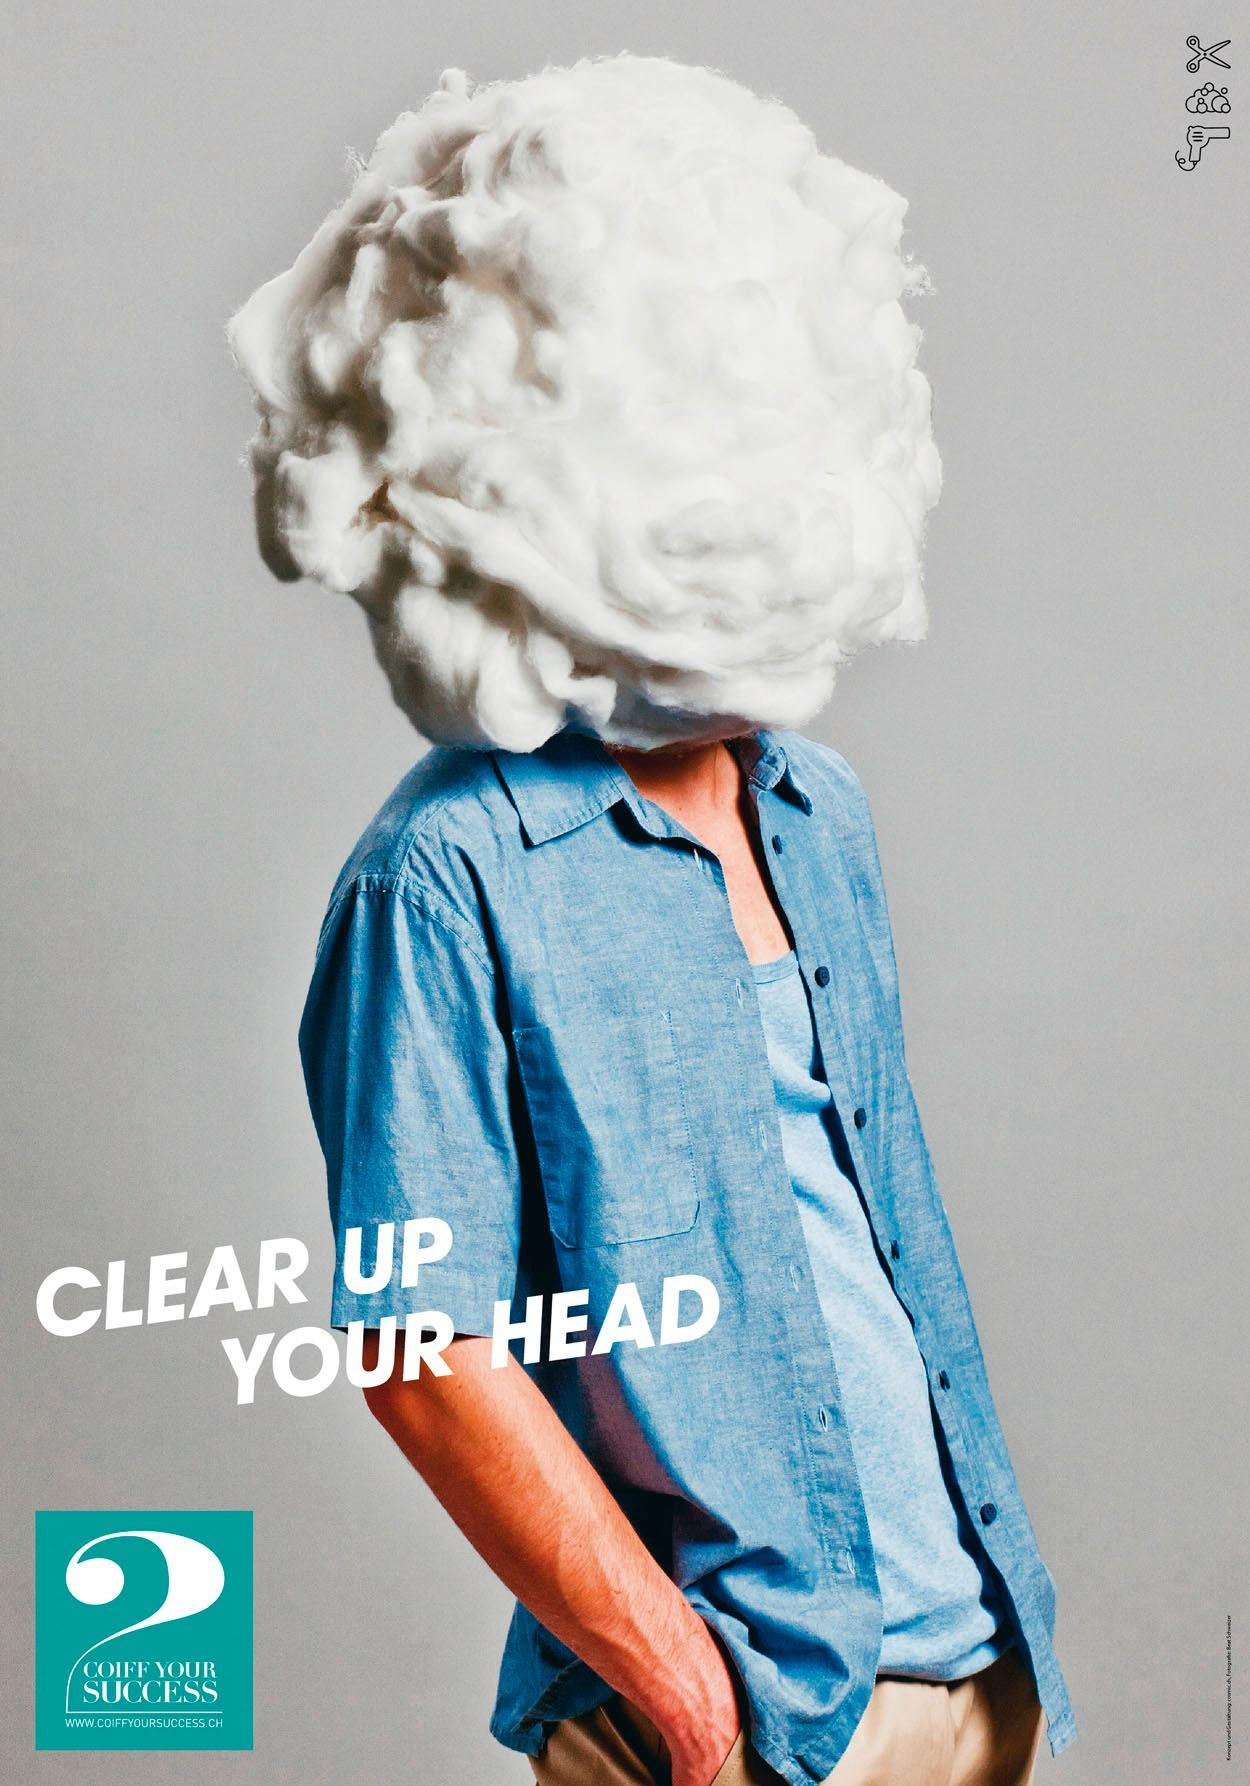 Coiff Your Success Print Ad -  Clear up your head